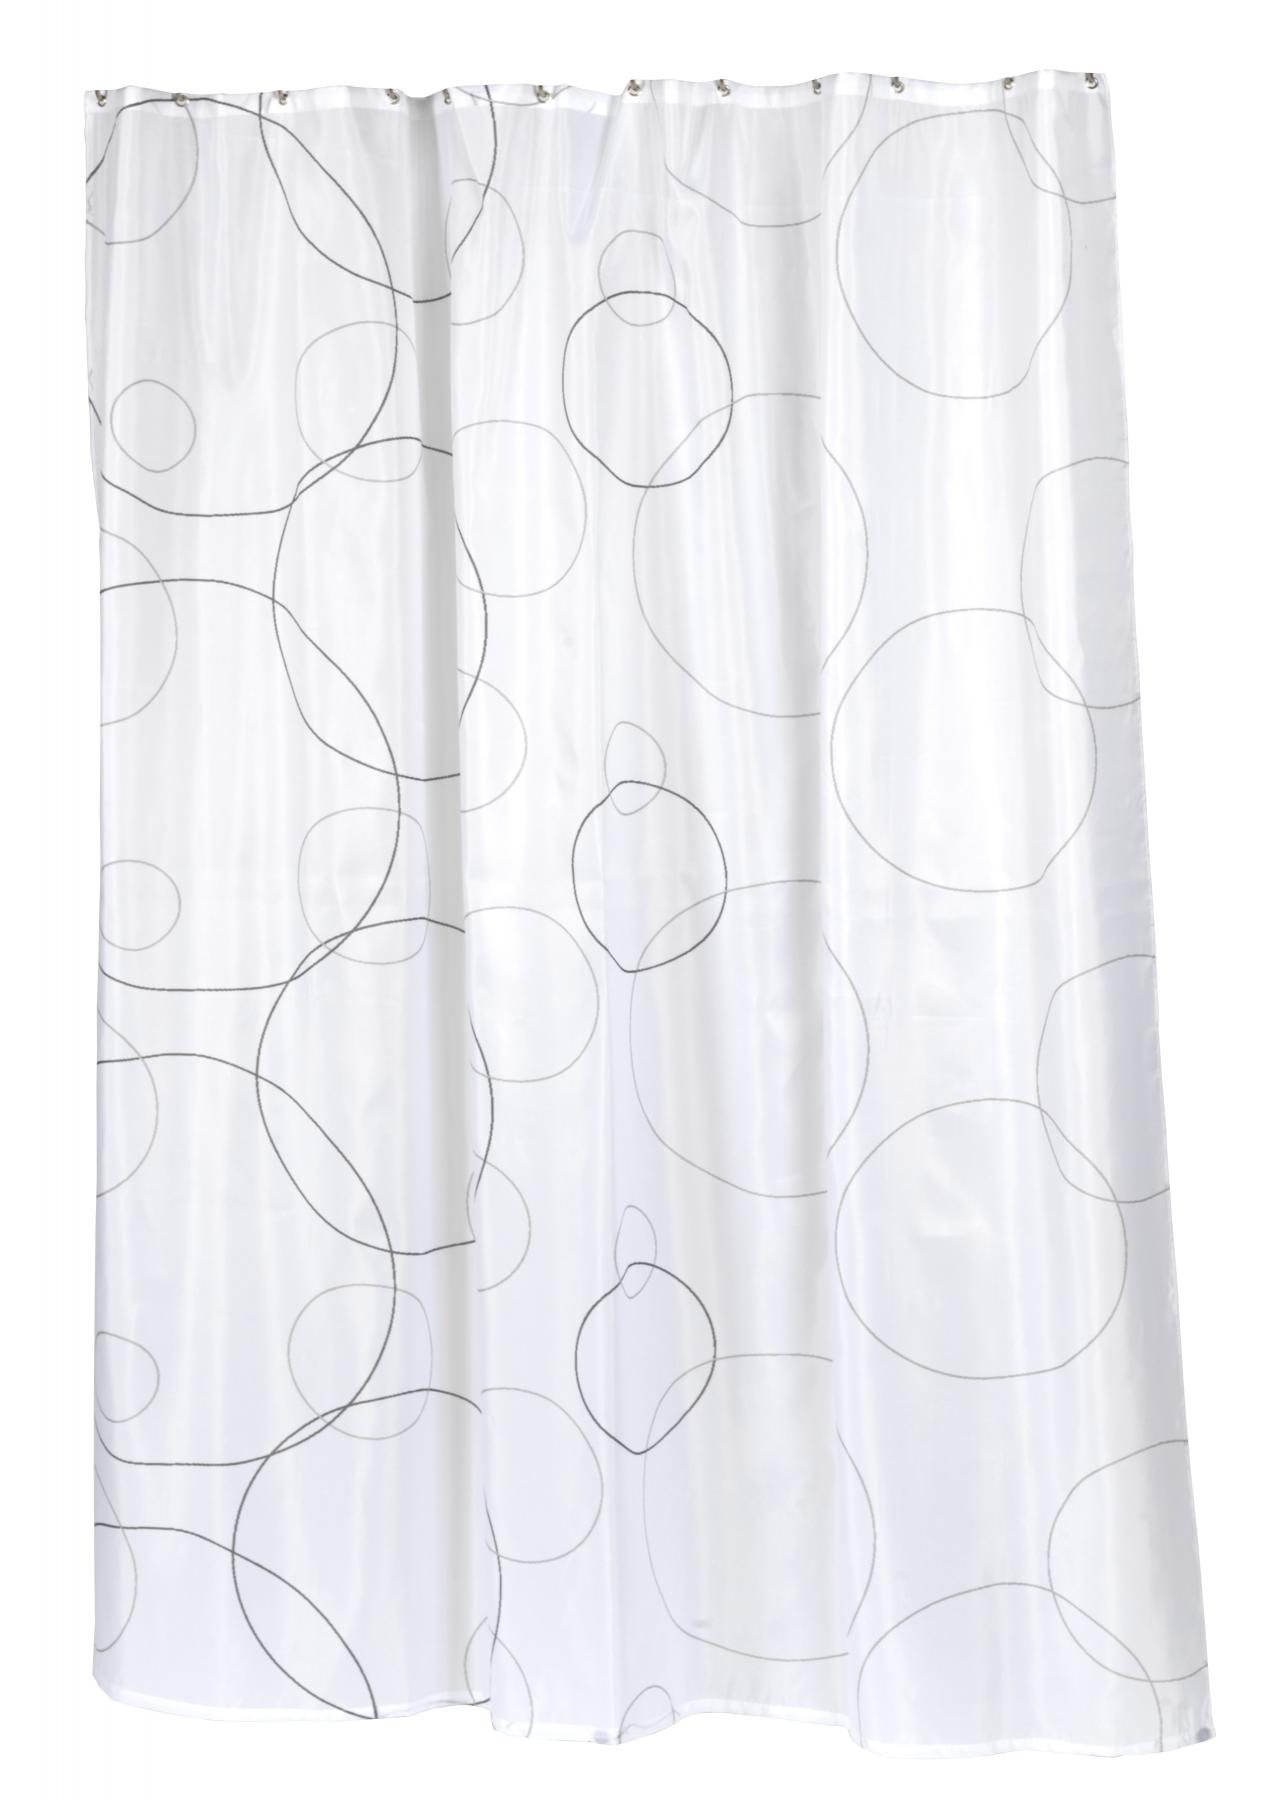 curtains right for bathroom resistant water your the to choose step shower curtain ways